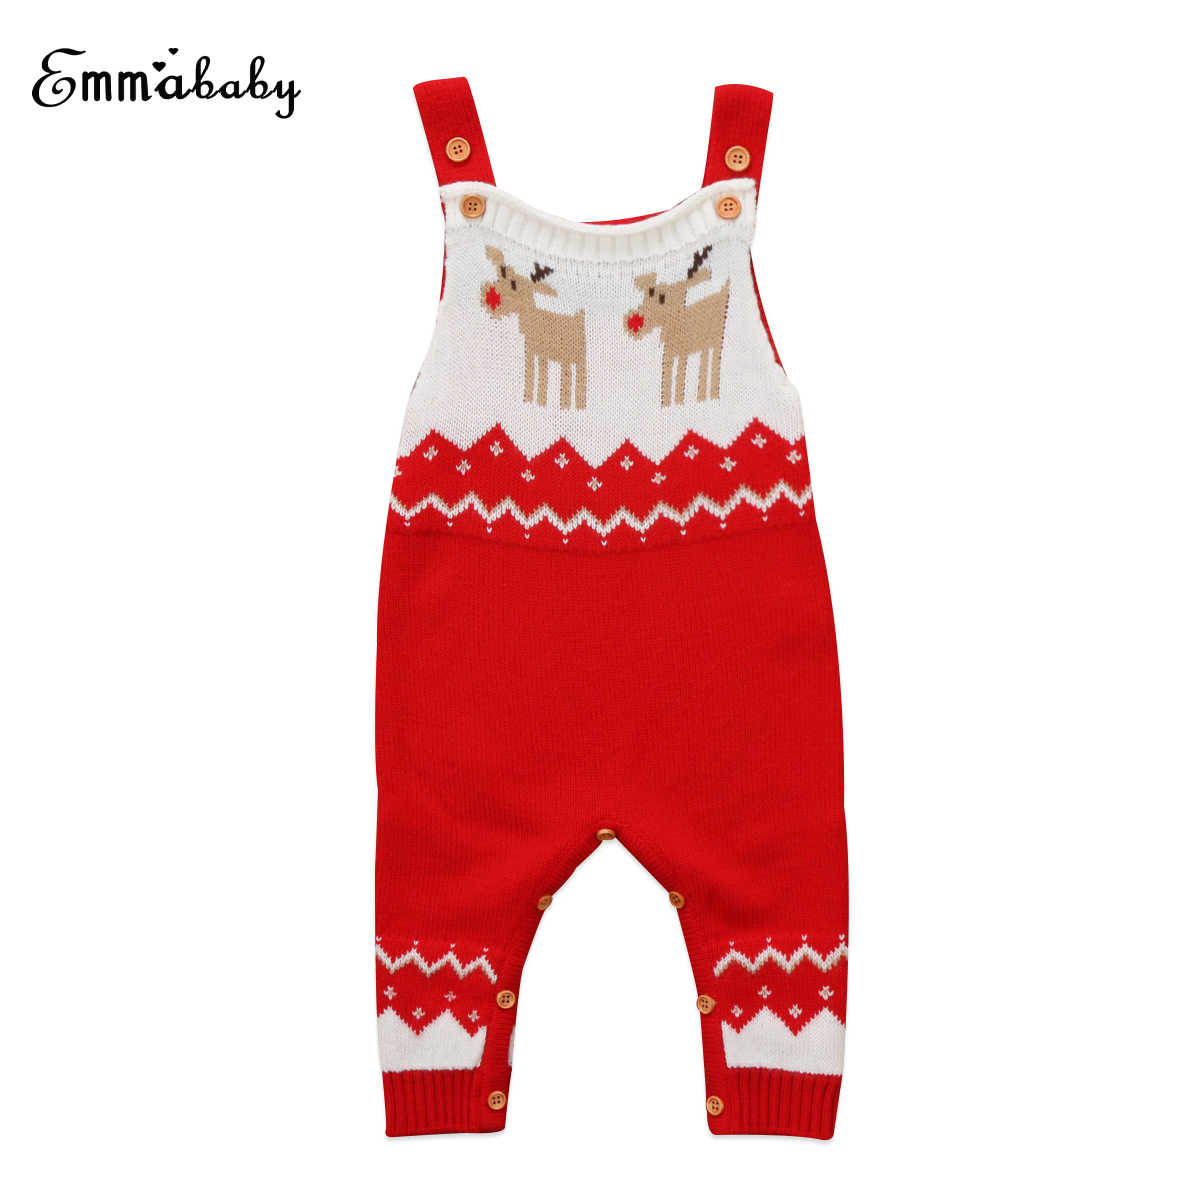 0f1a9d252b58 2018 new winter kid Christmas rompers Newborn Baby boy Girl Xmas Deer  sleeveless Knitted Romper cute